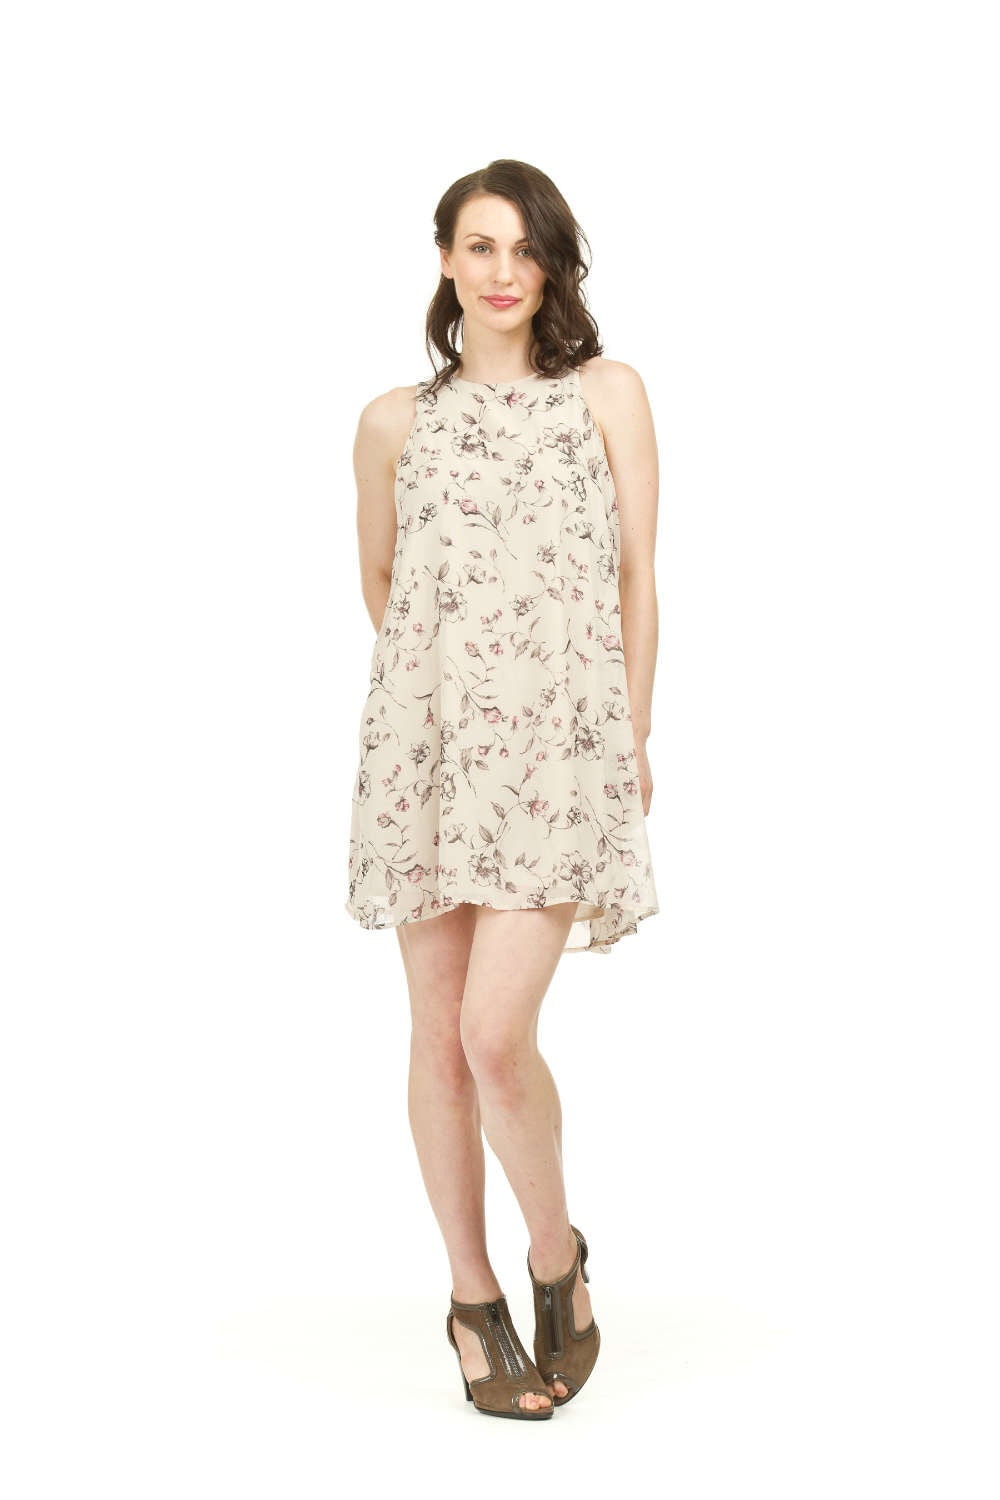 Papillon PD03730 Floral Print Swing Dress